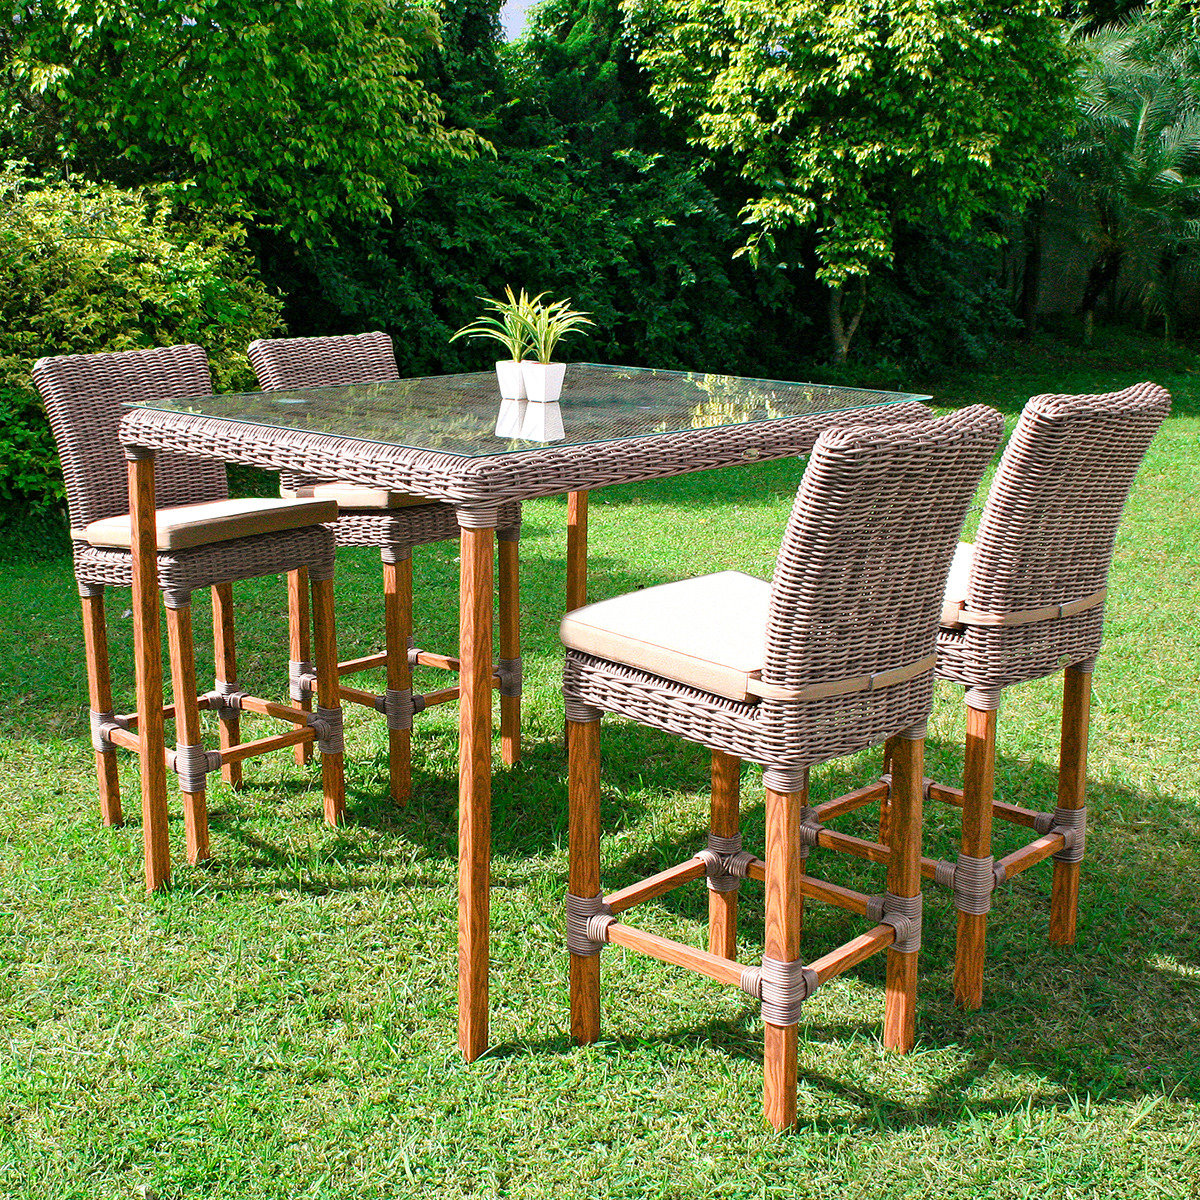 bargruppe promi treff aus outdoor rattan von g rtner. Black Bedroom Furniture Sets. Home Design Ideas